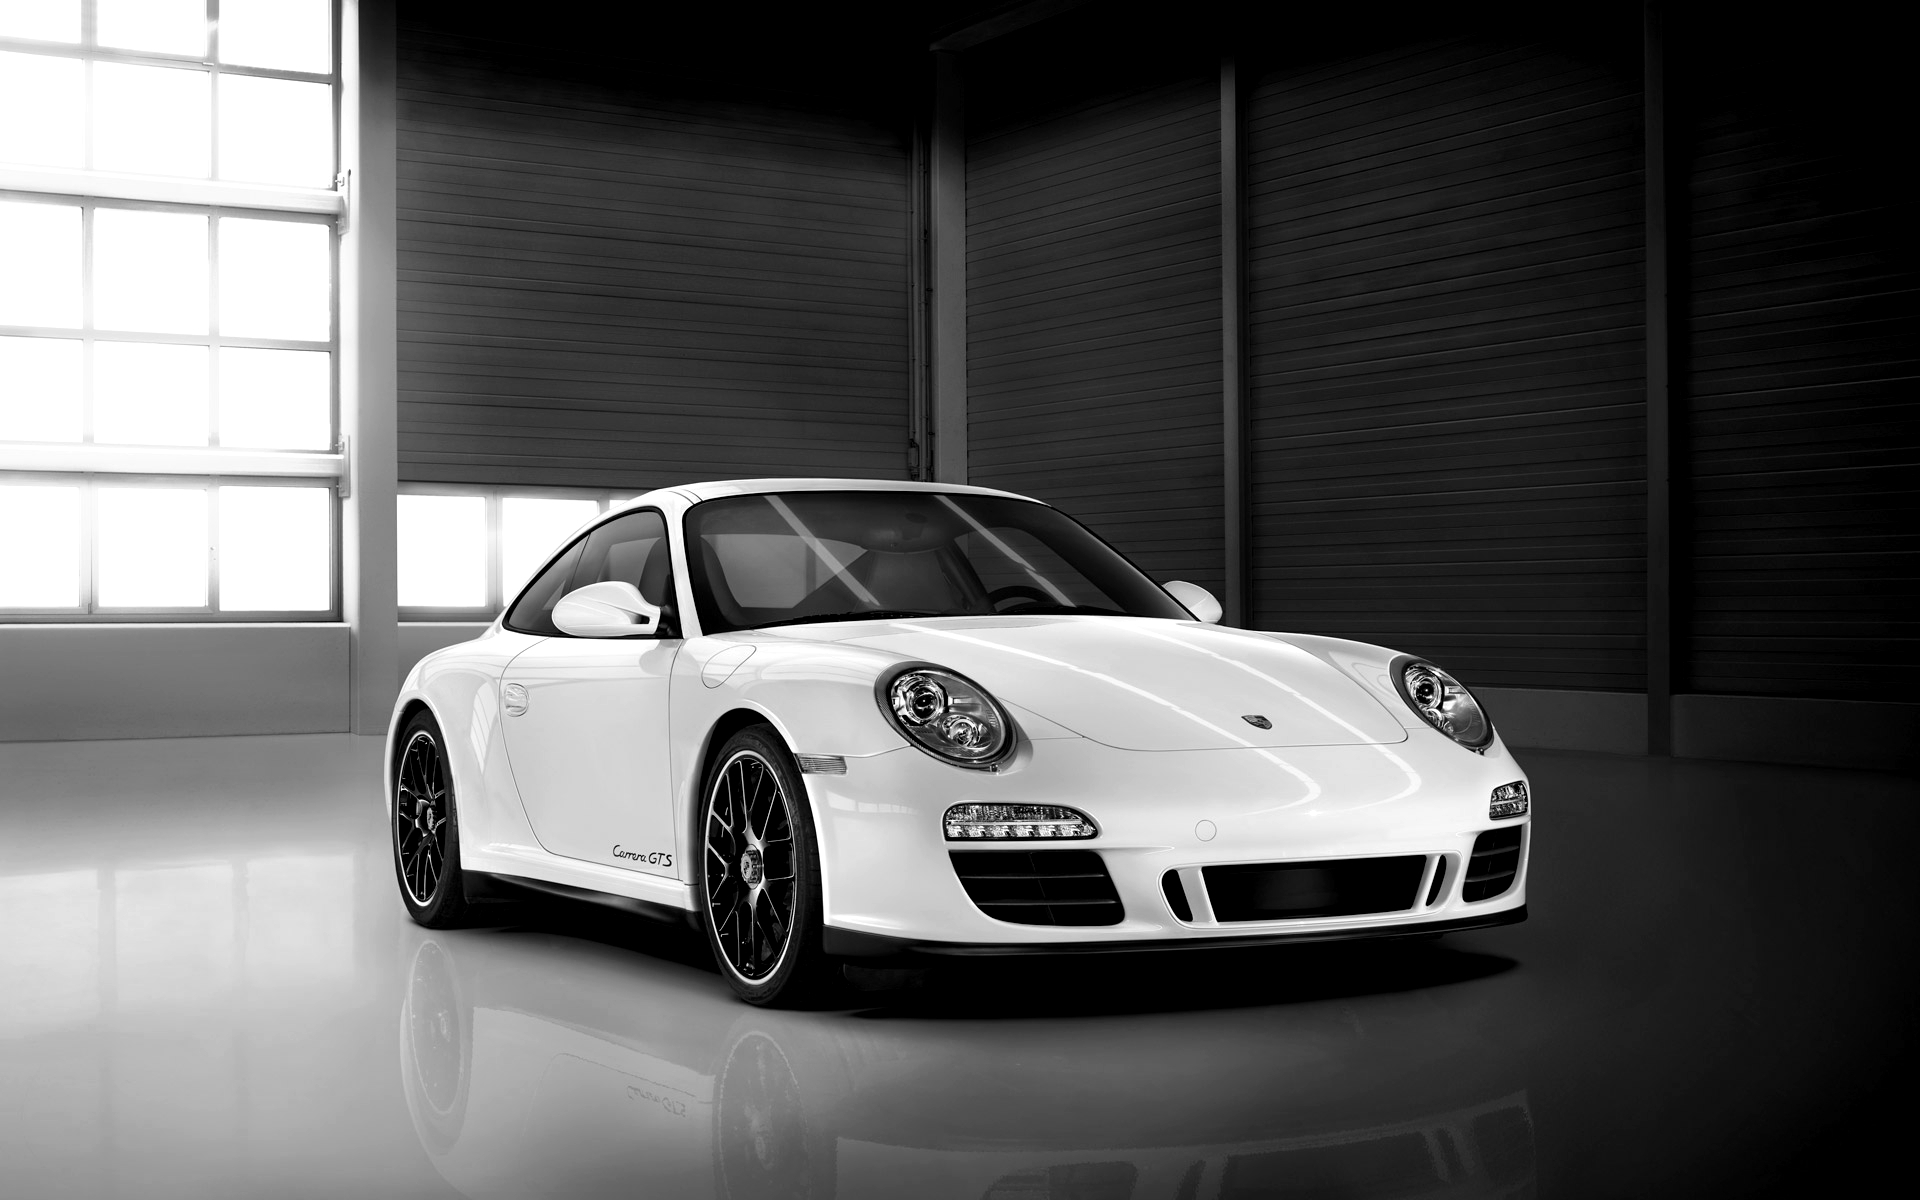 Black and white cars 27 hd wallpaper - Car wallpaper black and white ...